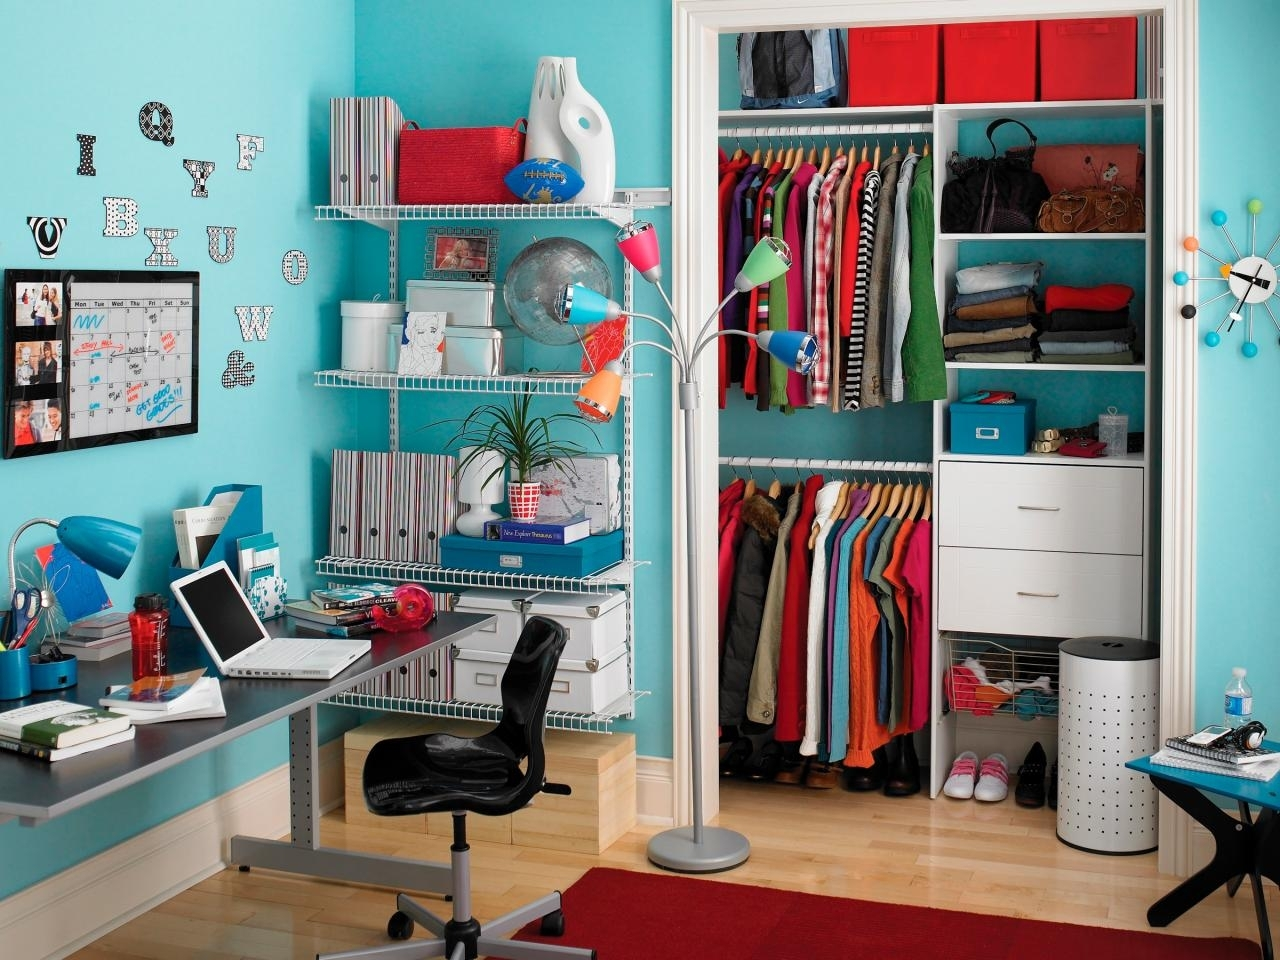 10 Attractive Diy Organization Ideas For Small Spaces %name 2020